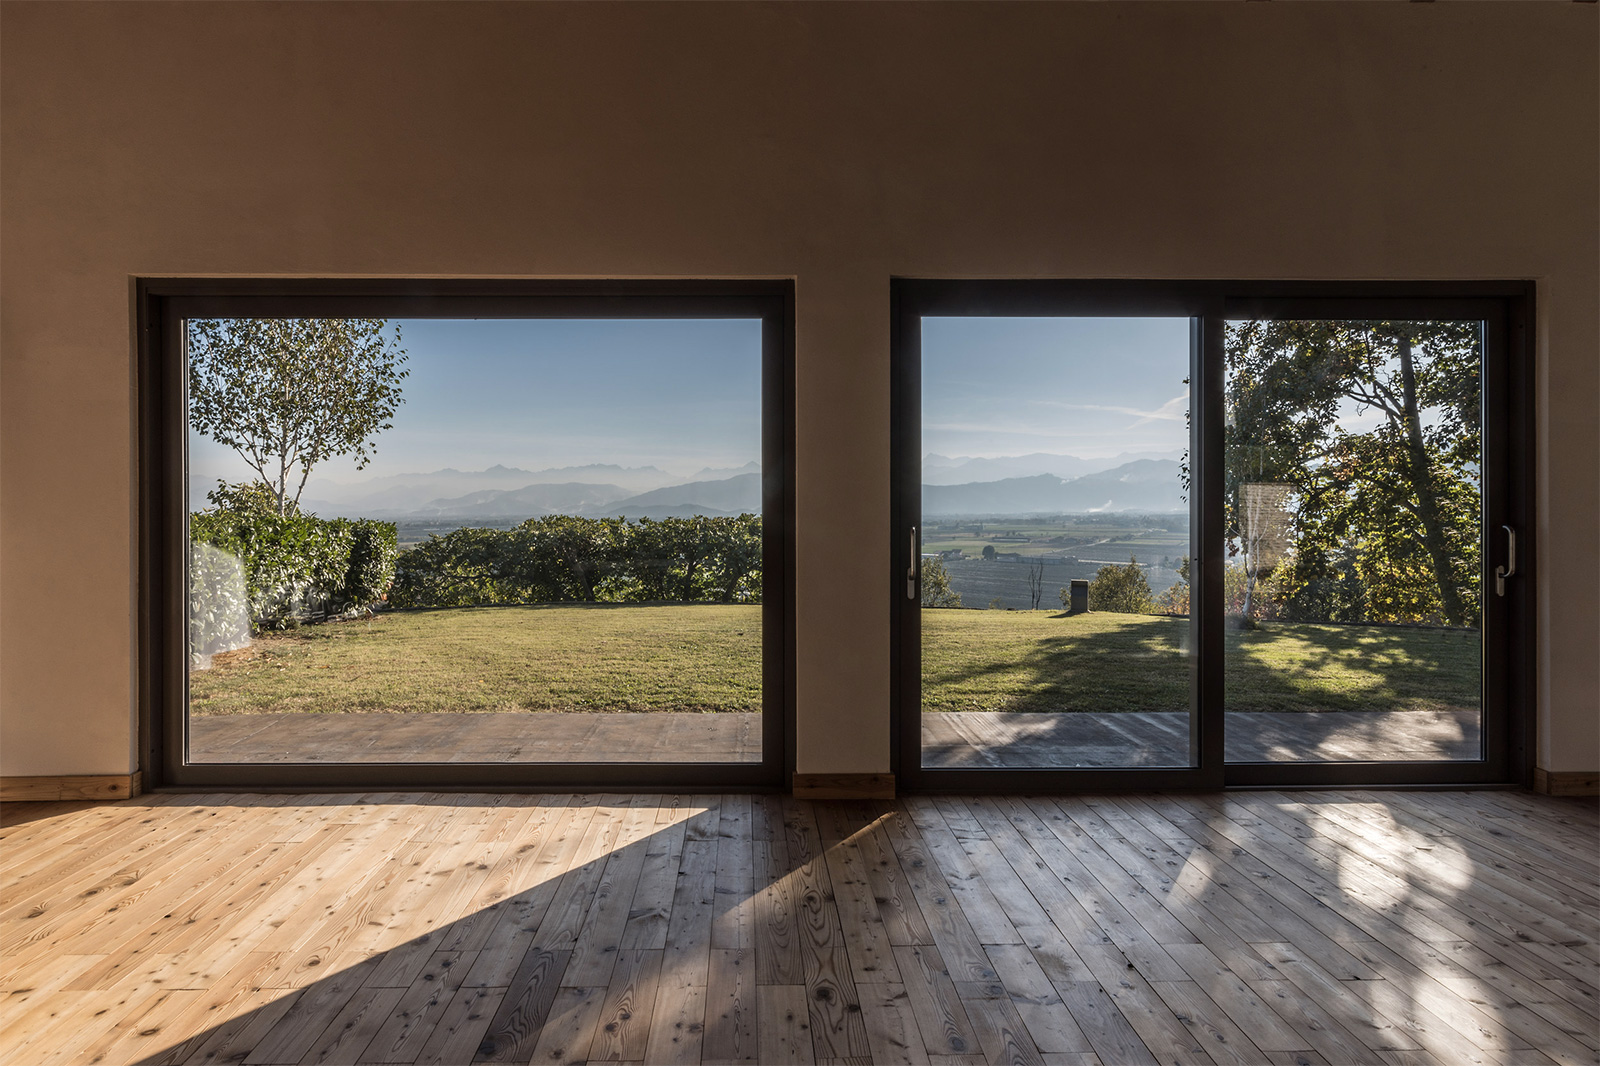 Villa con Vista: a simple interior palette of white walls and raw timber floors doesn't detract from the views